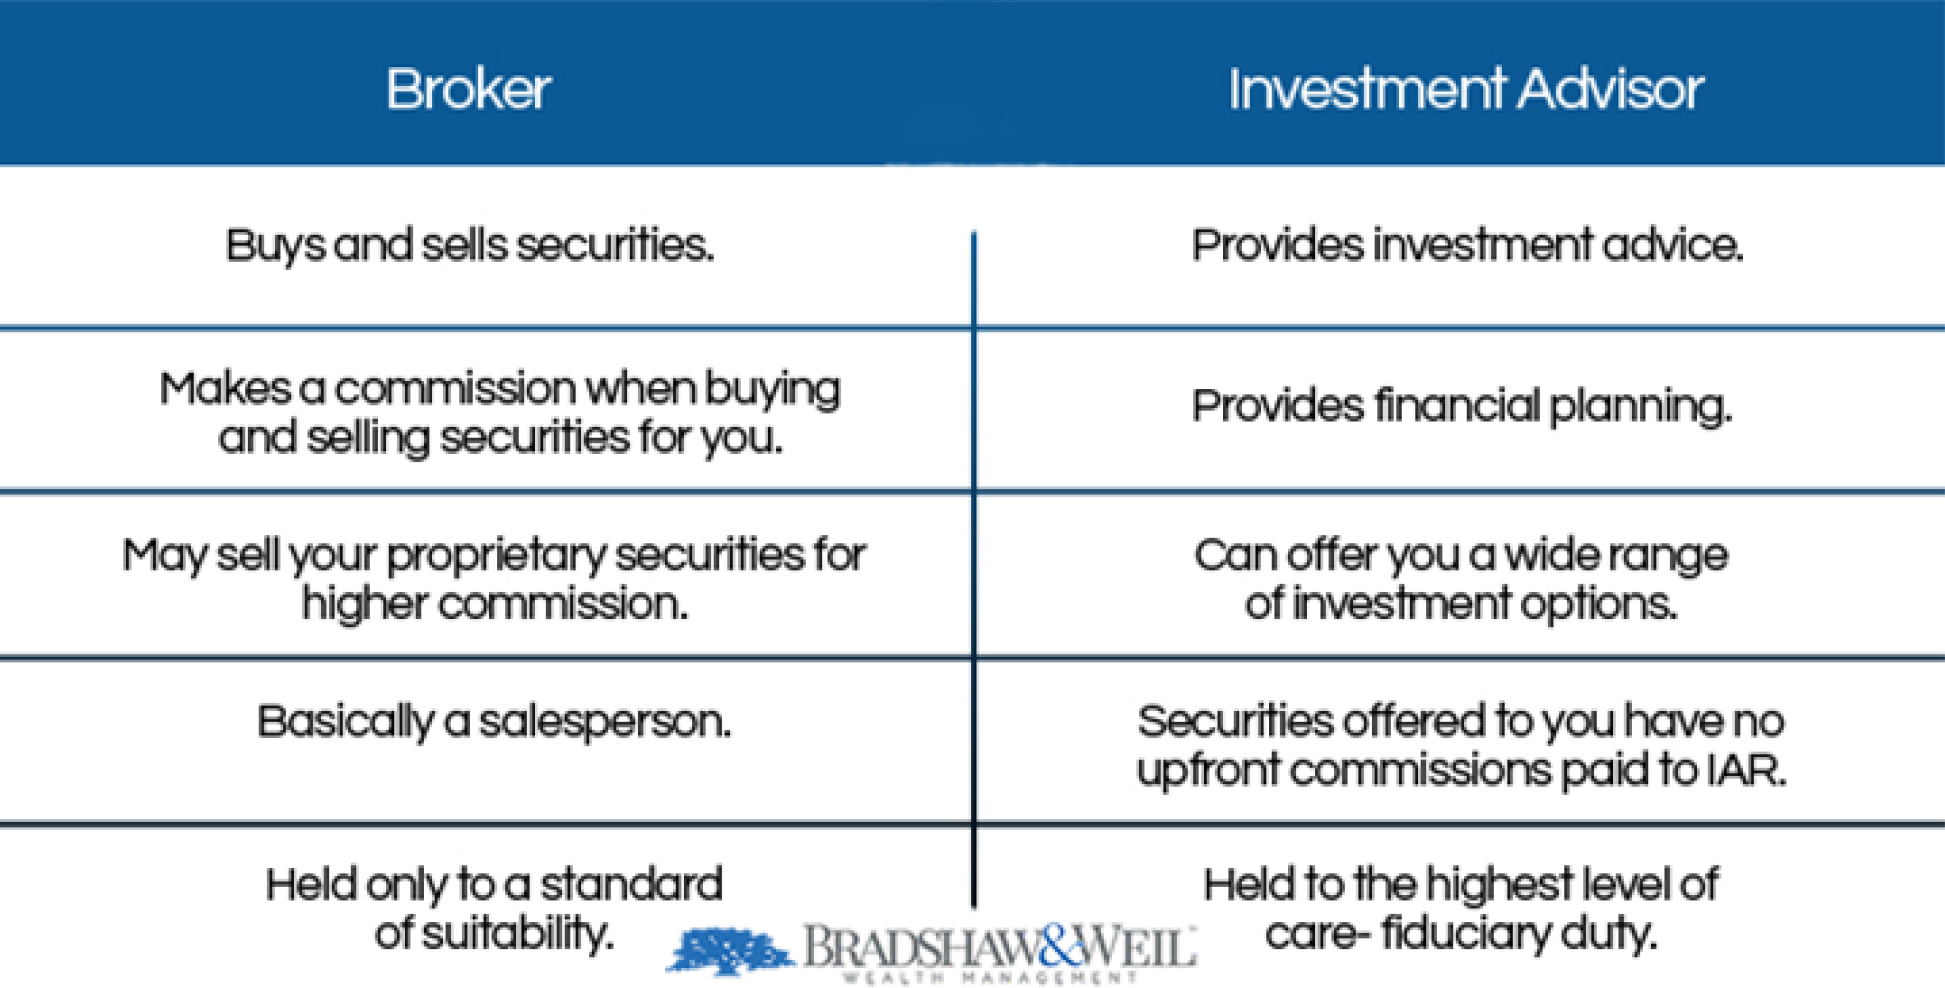 BW-fiduciary-standard-vs-suitability